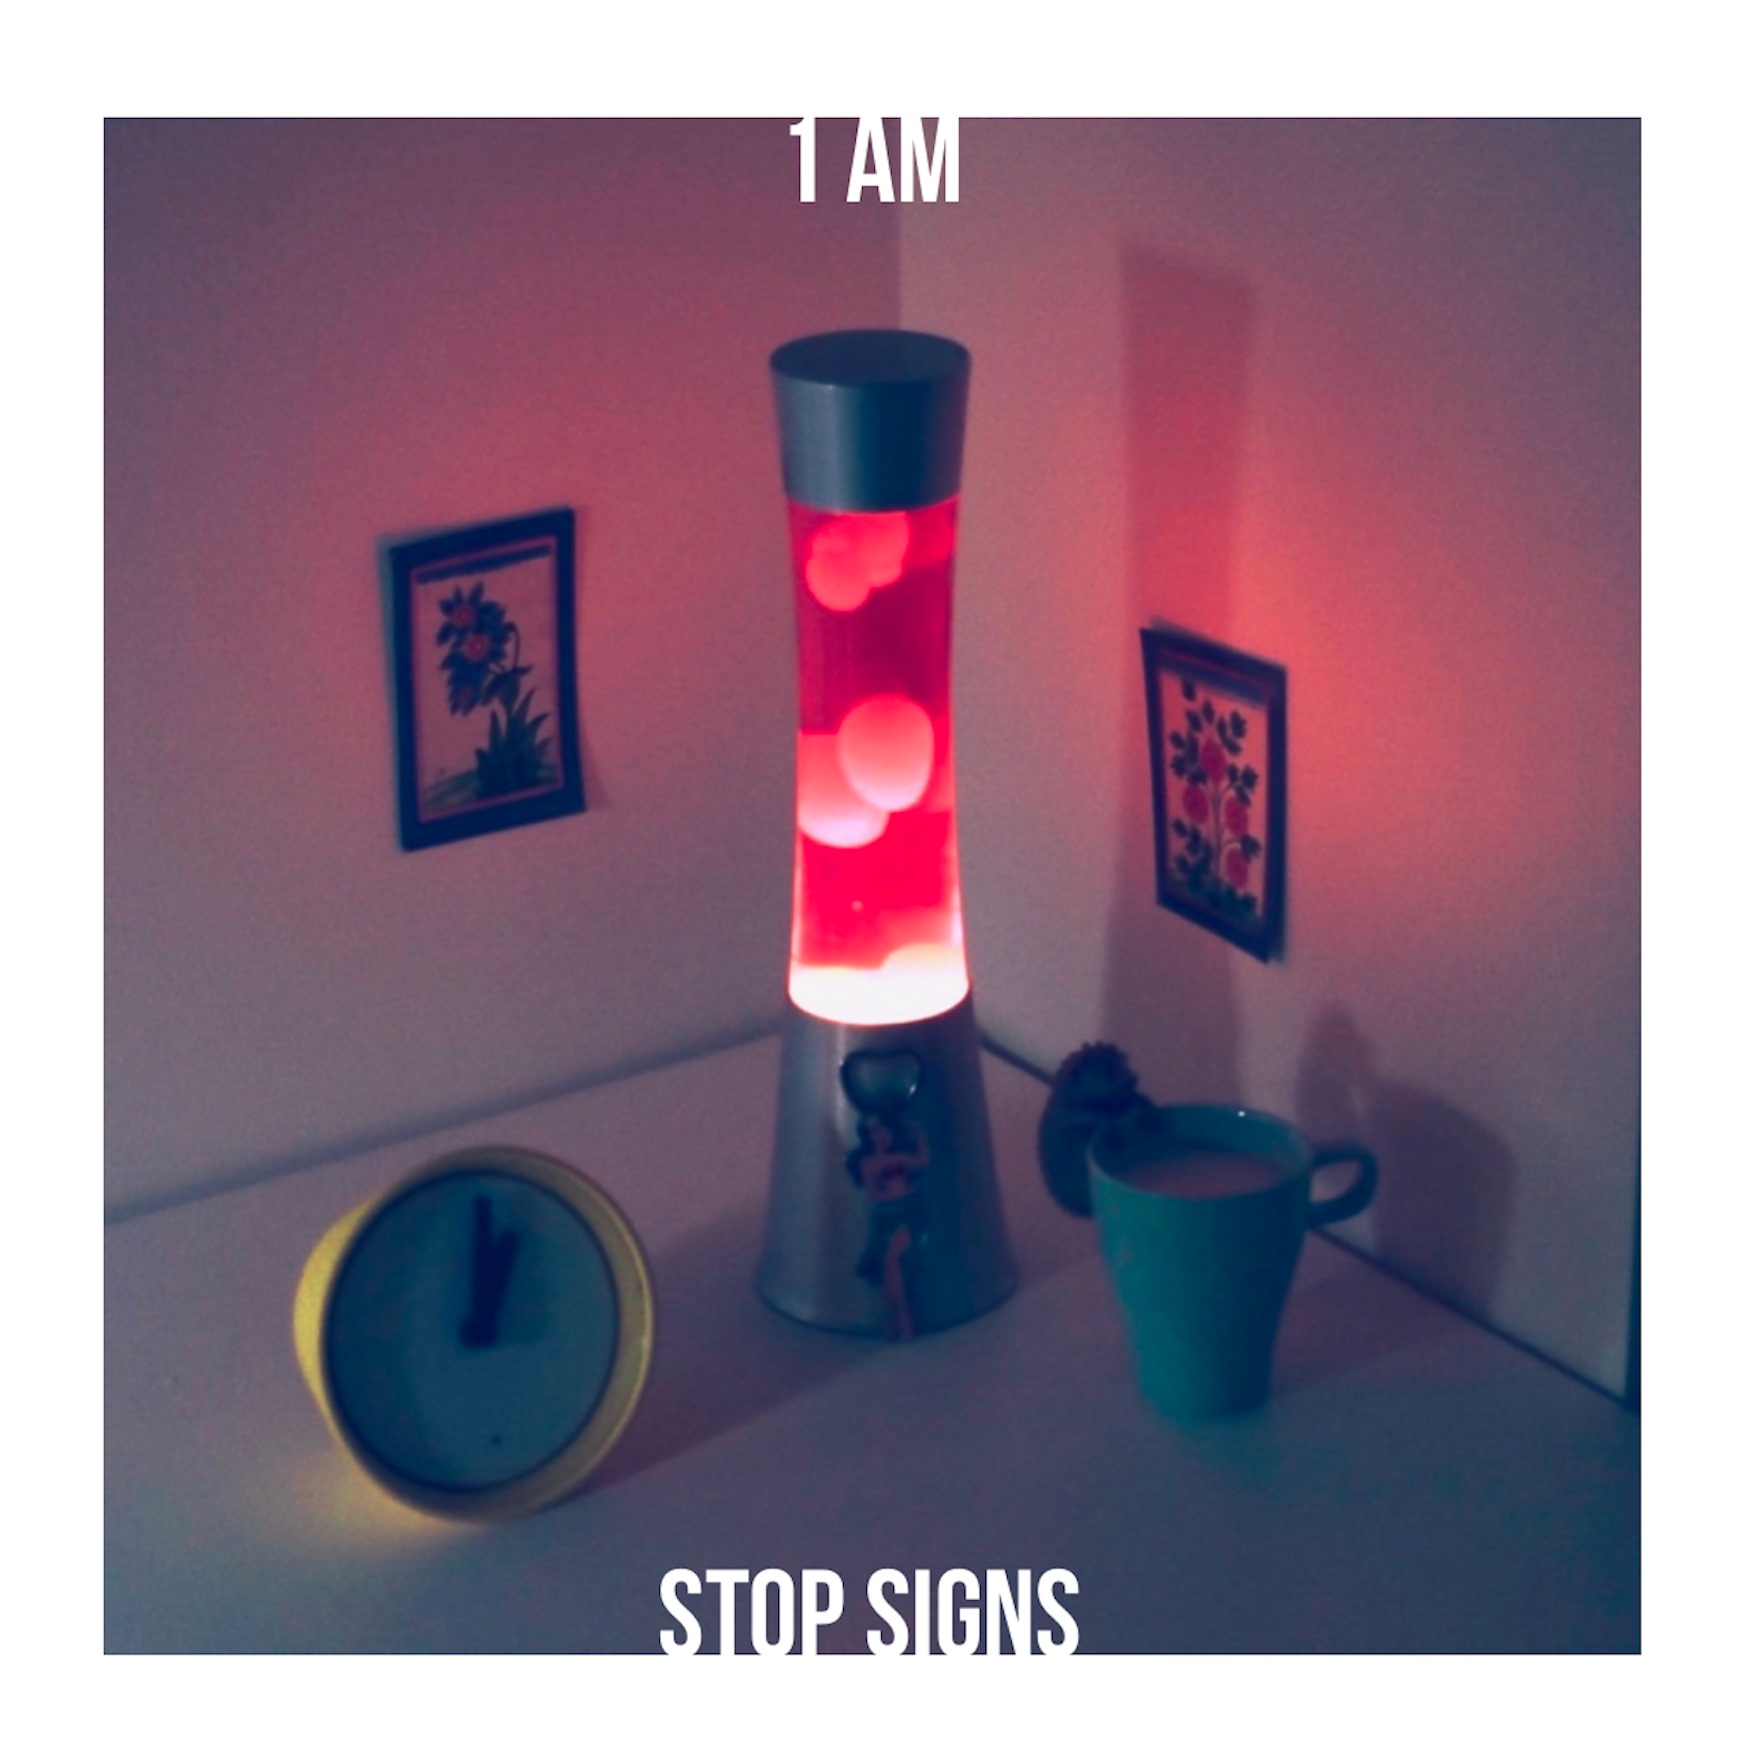 Stop Signs - 1AM